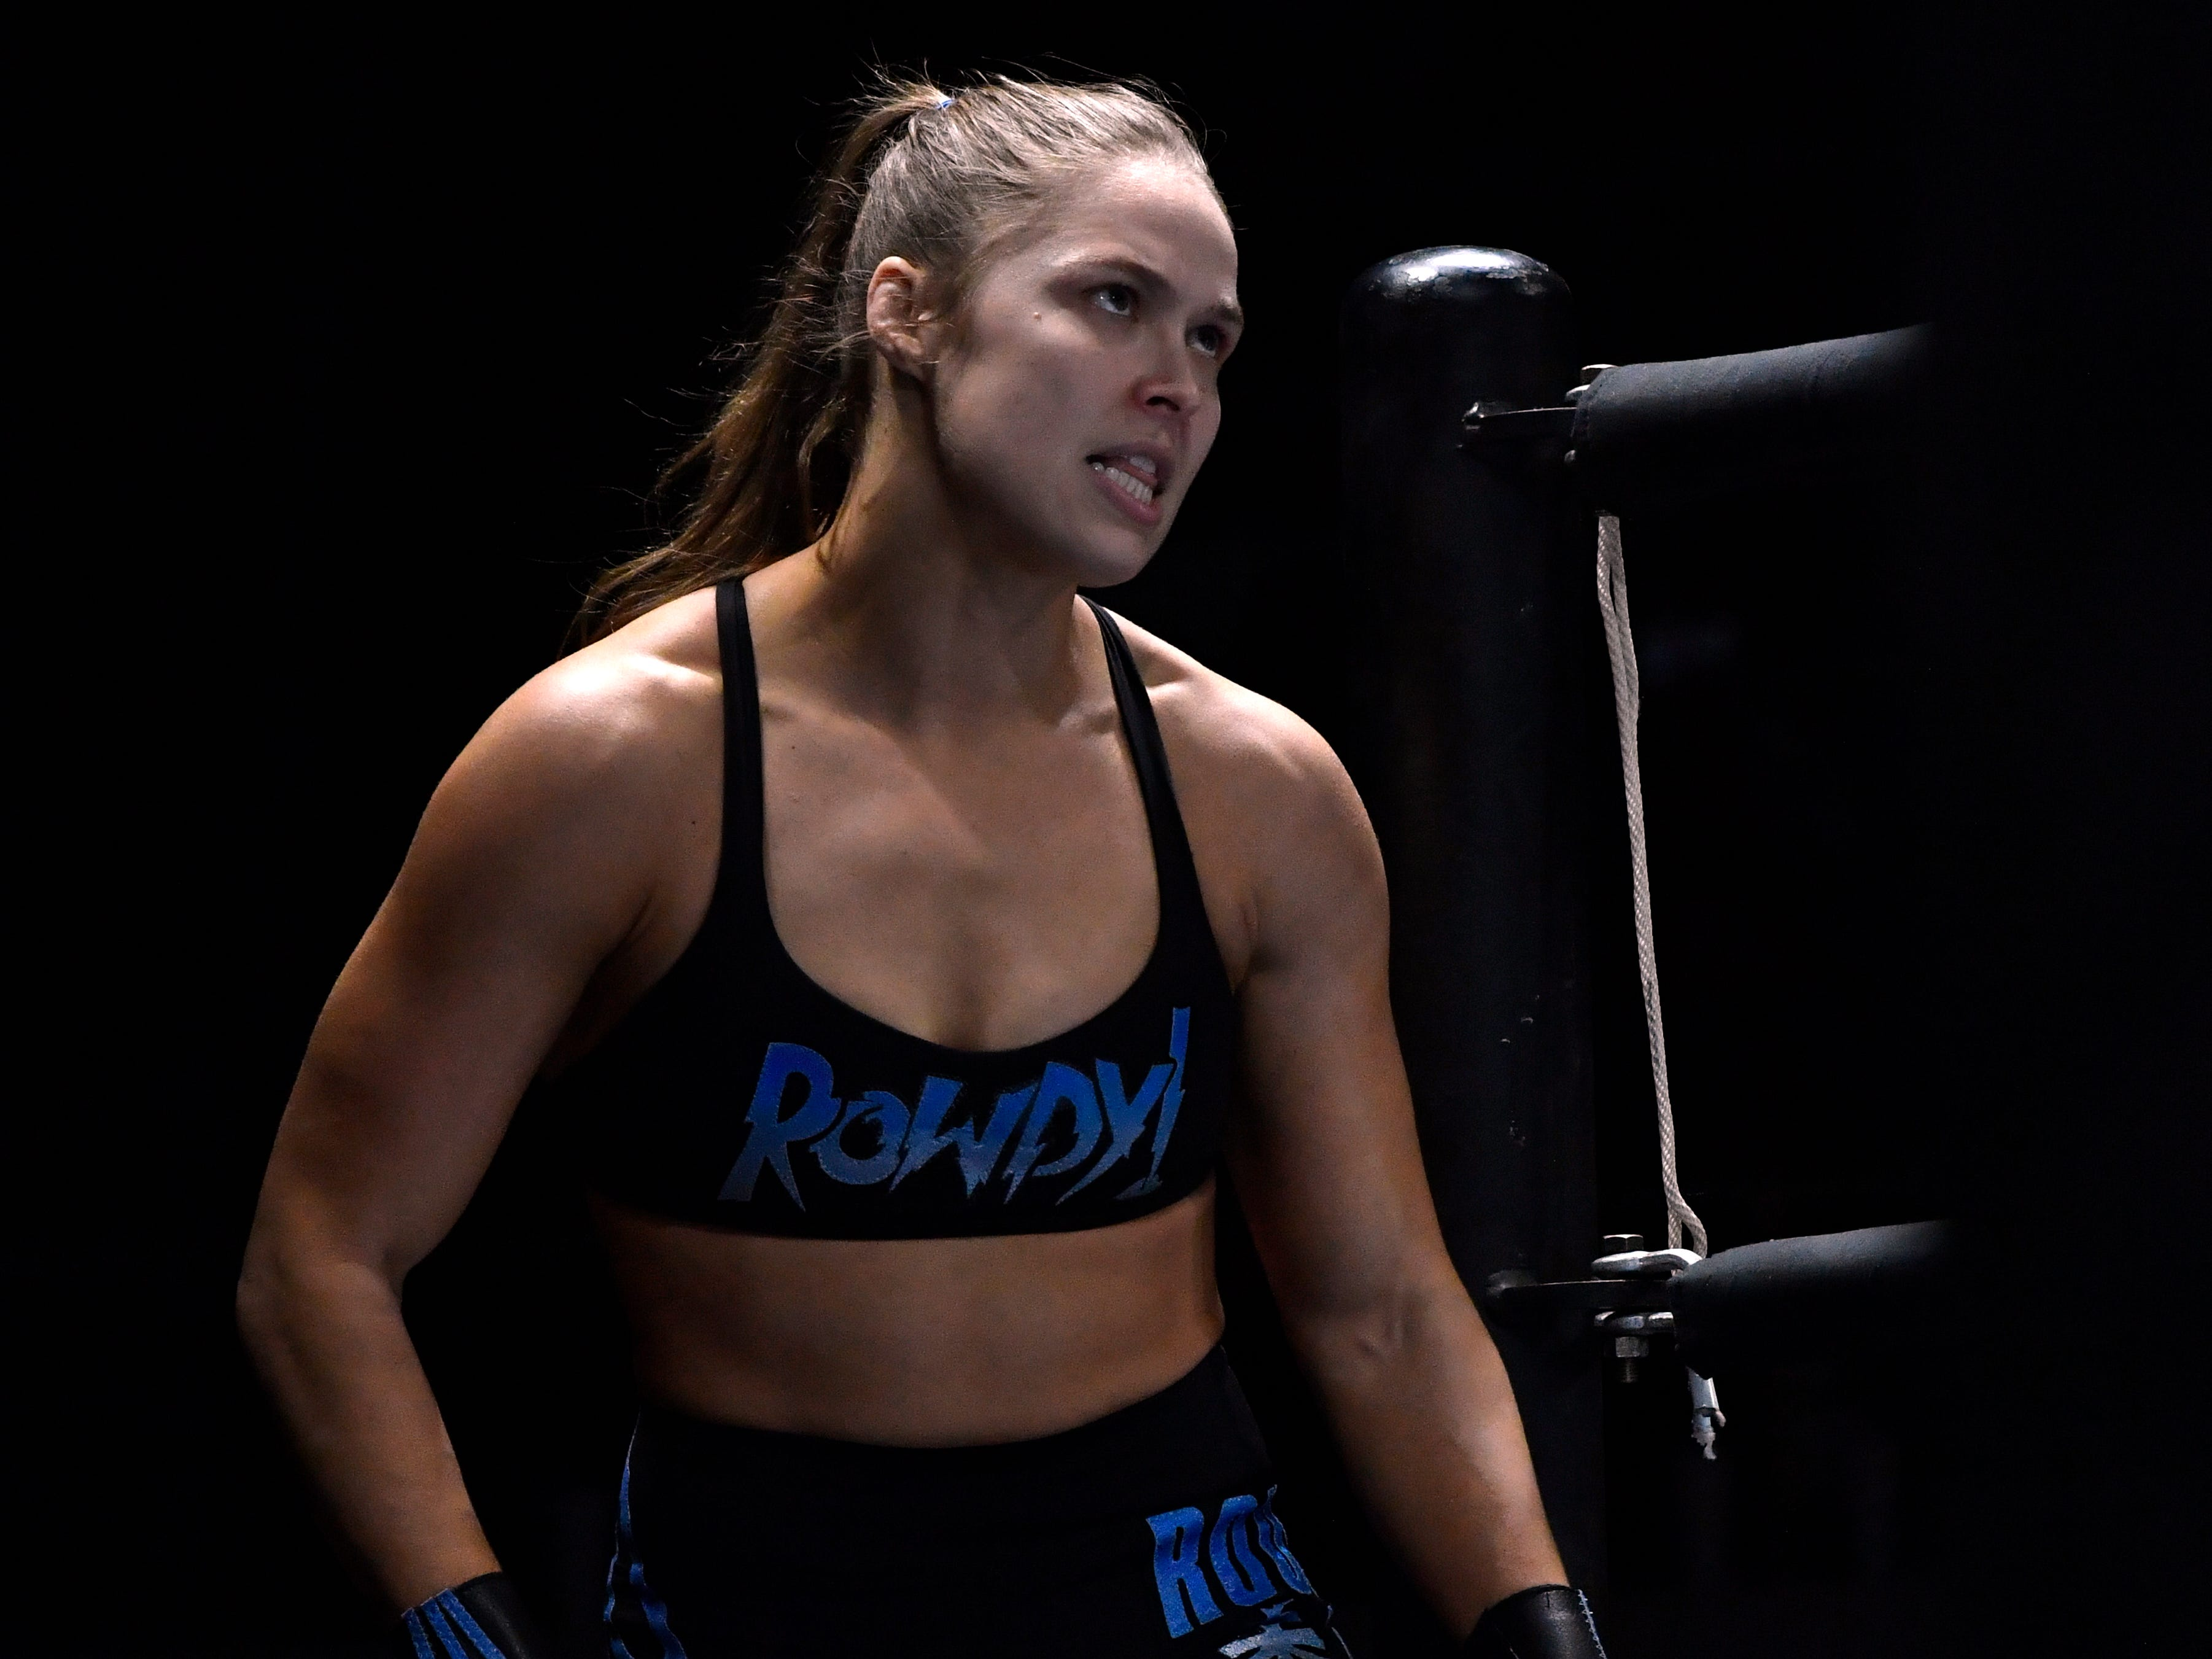 """Rowdy"" Ronda Rousey climbs into the ring during Saturday's WWE Live wrestling event Jan. 19, 2019. Held at the Taylor County Coliseum, the evening featured a colorful array of World Wrestling Entertainment stars."